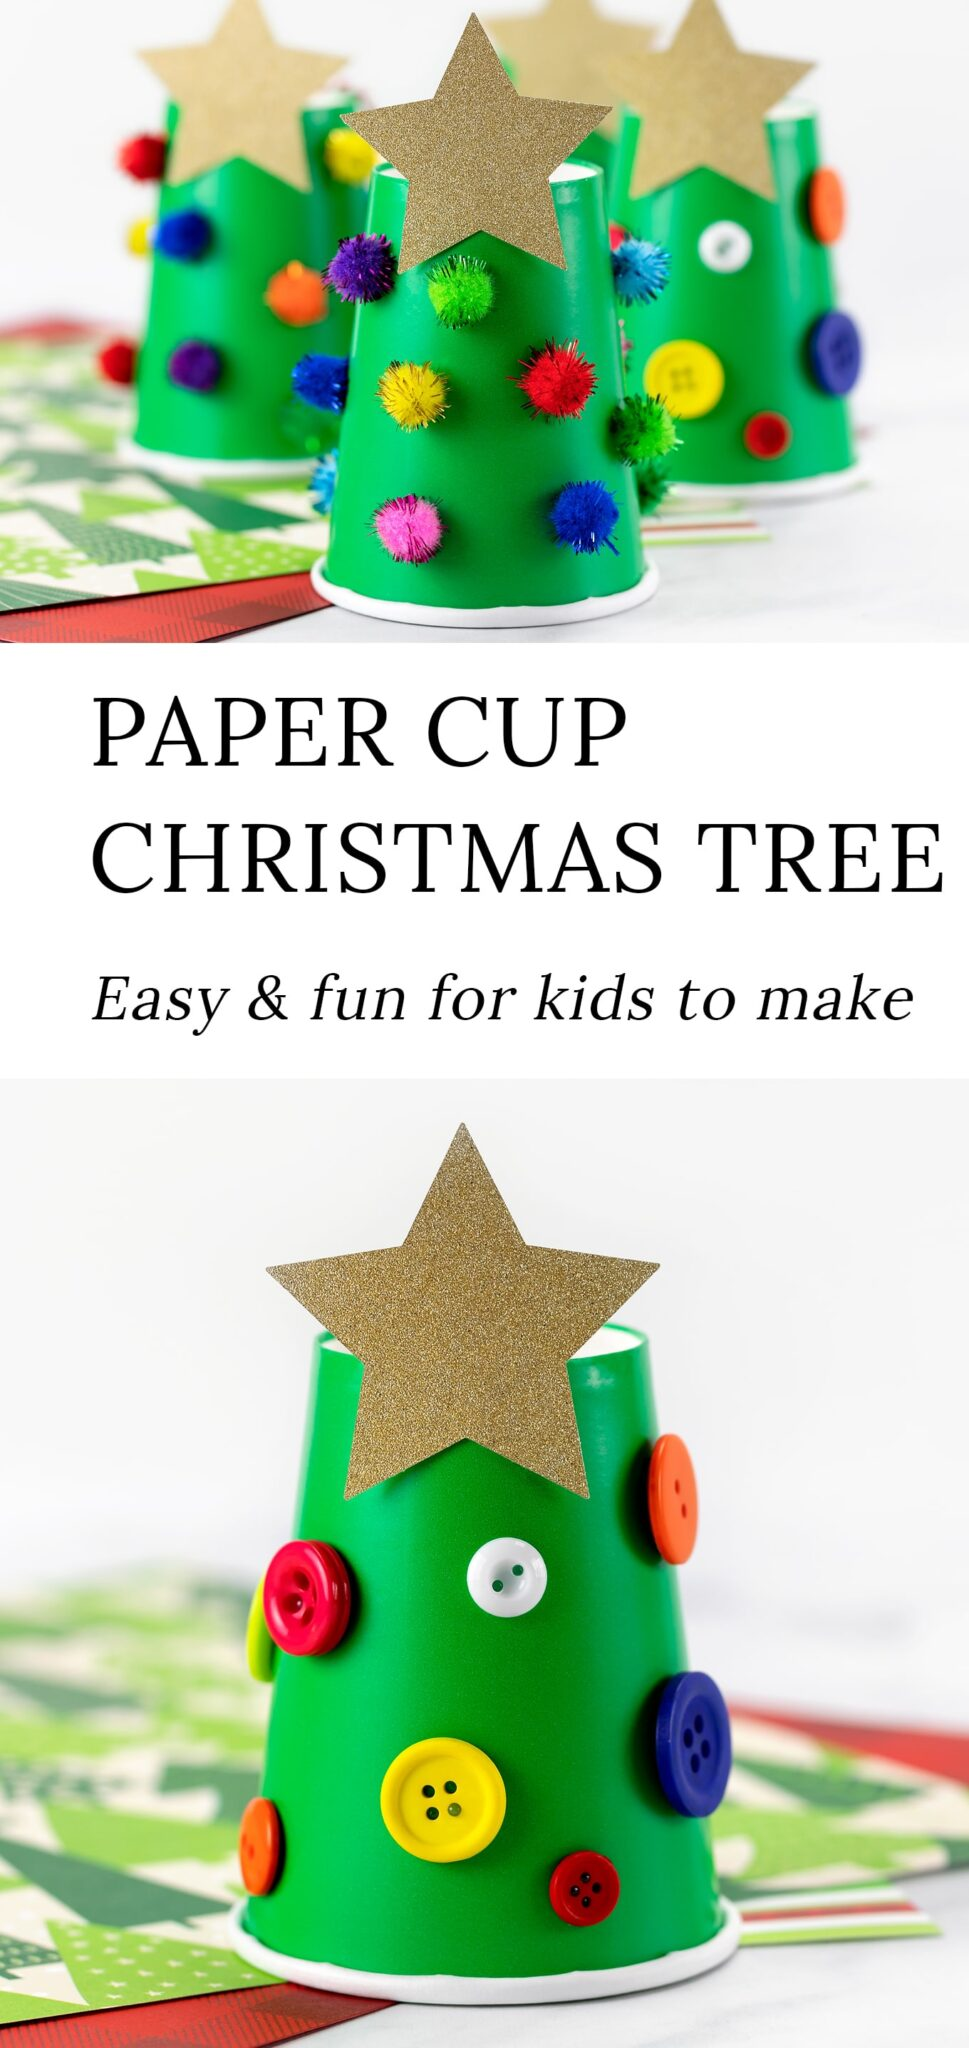 This easy, inexpensive, and cute Paper Cup Christmas Tree craft is perfect for school holiday parties, community programs, and home. Fun for ages 2 and up! #christmasornament #christmascraft #kids #christmastree #preschool via @firefliesandmudpies